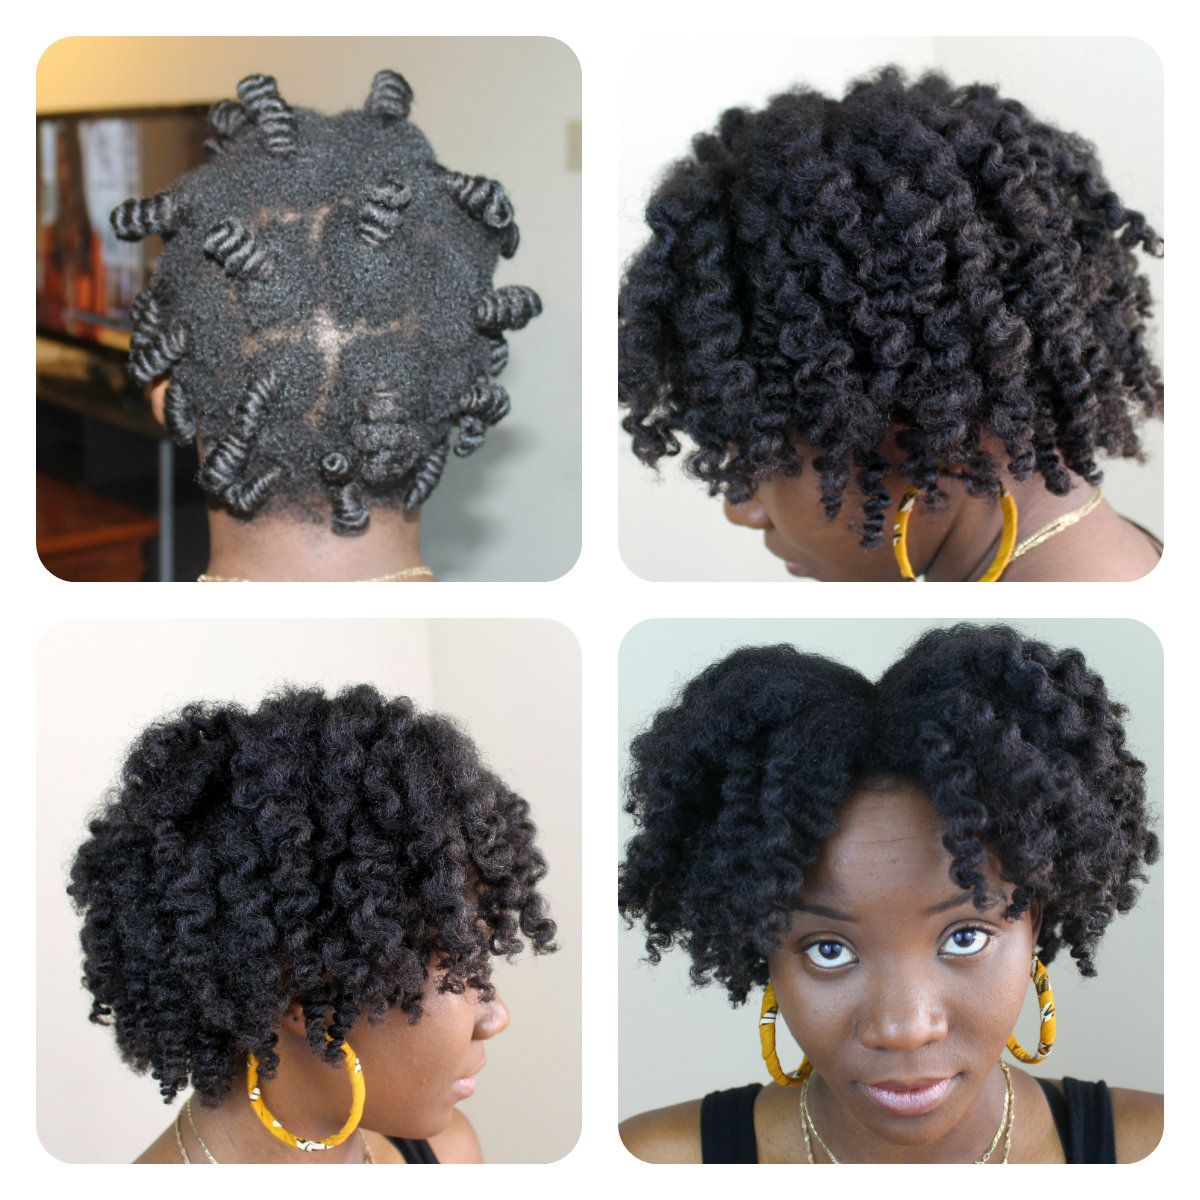 Sibongile 4c Natural Hair Style Icon 4c Natural Hair Short Natural Hair Styles Natural Hair Styles Easy